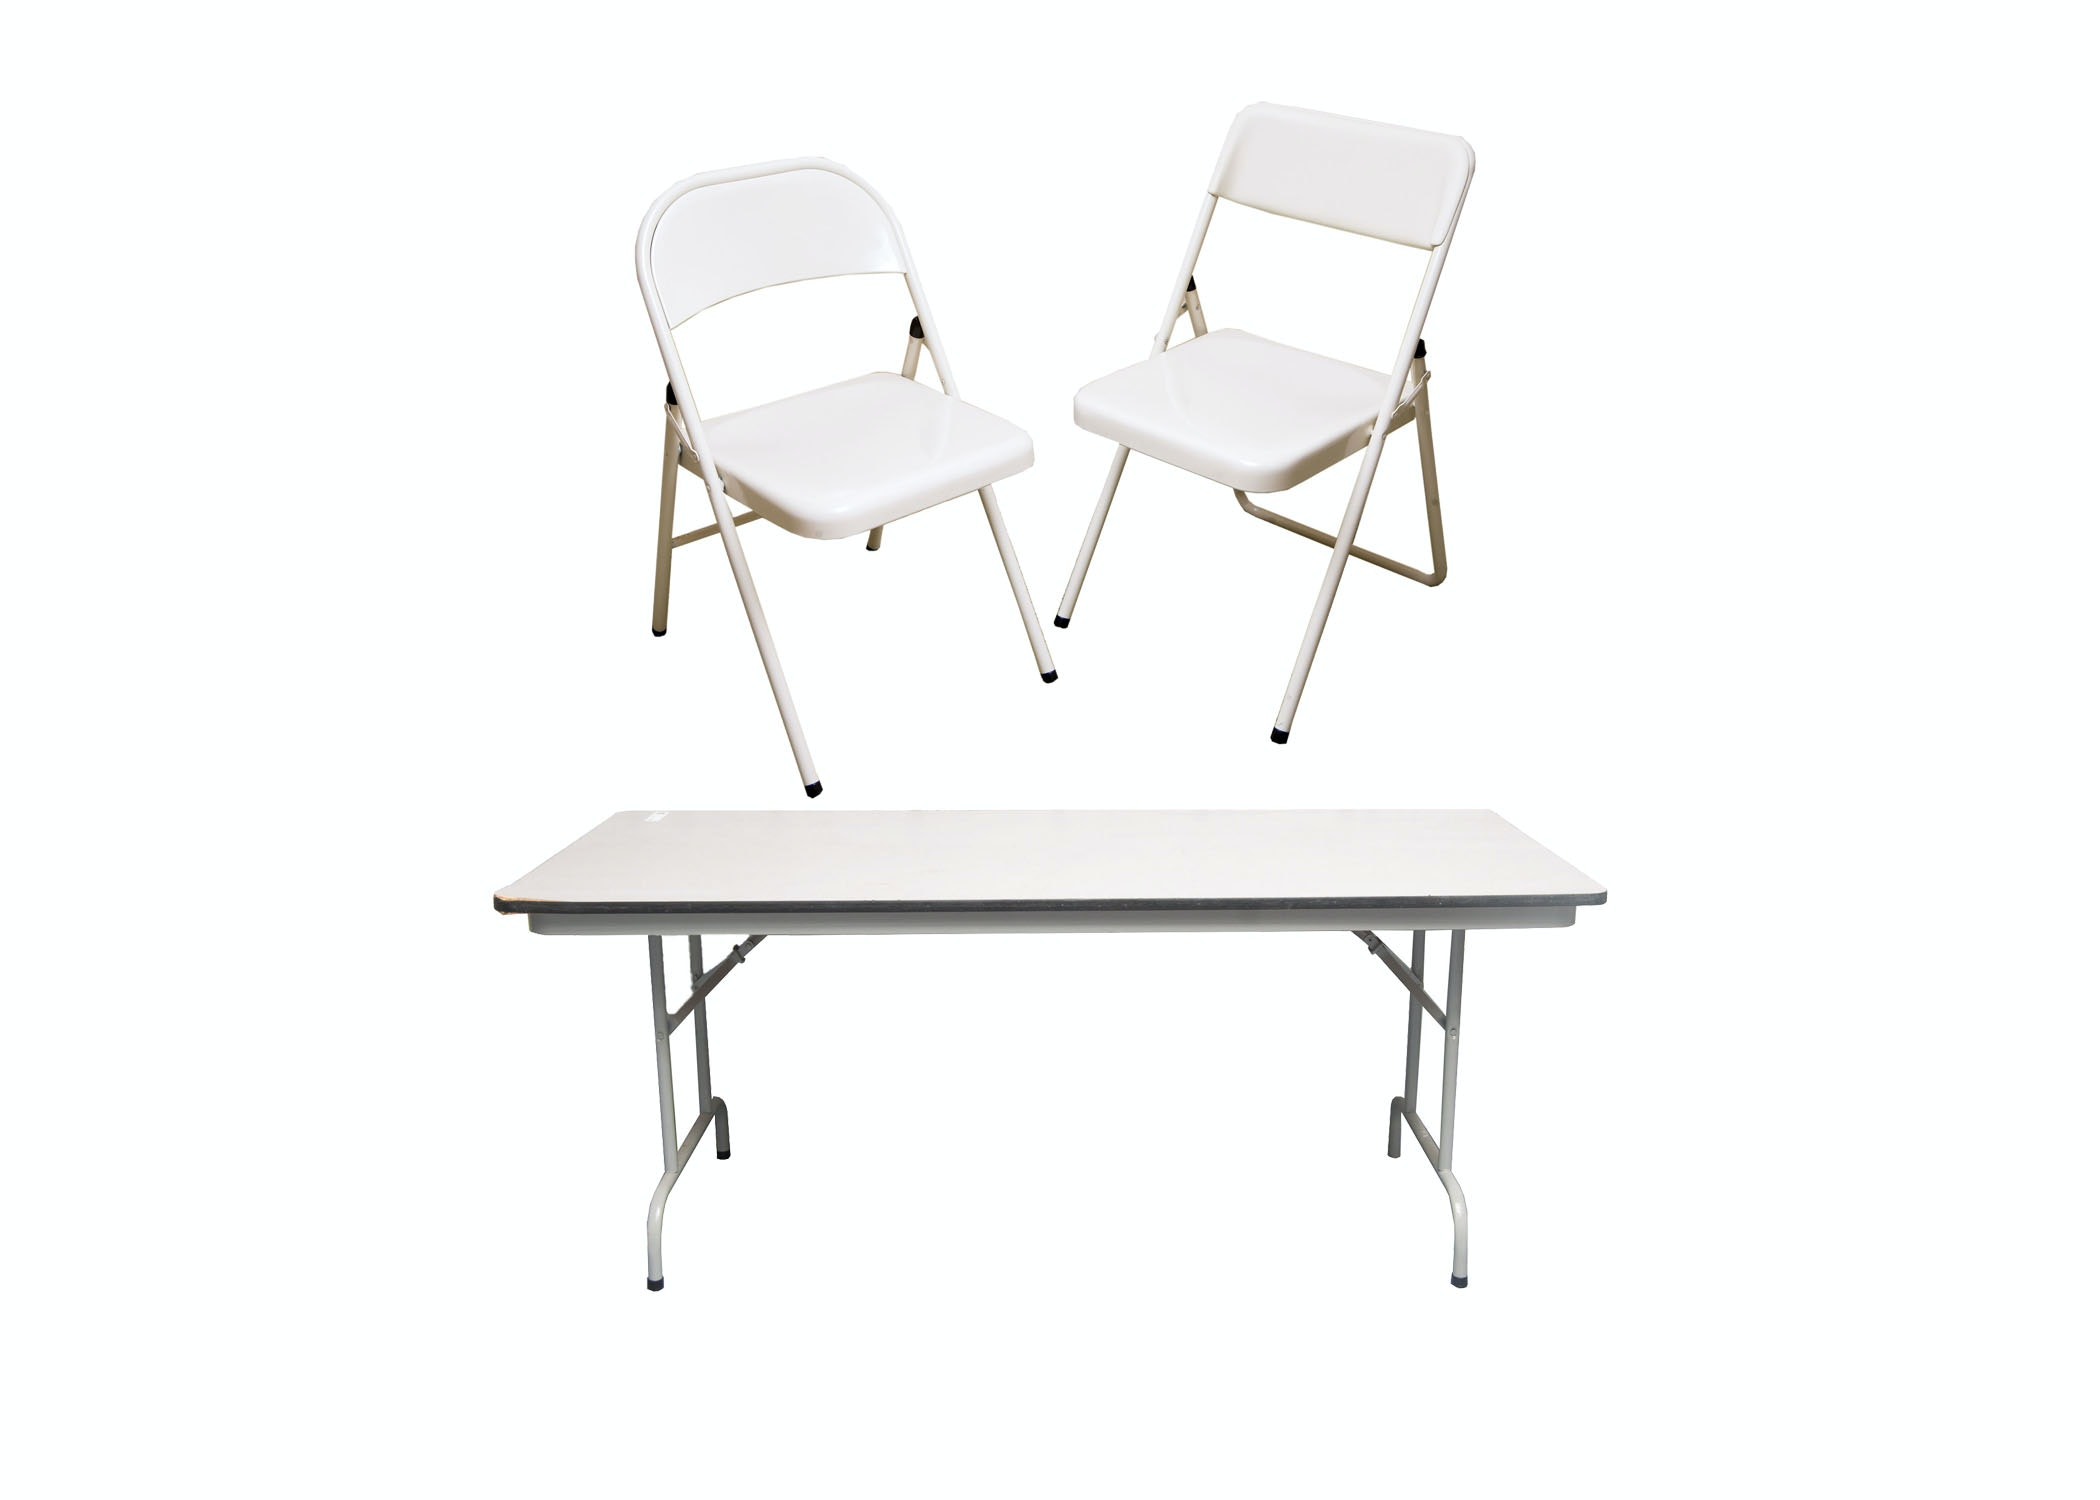 Folding Table and Chairs by Cosco and Meco EBTH